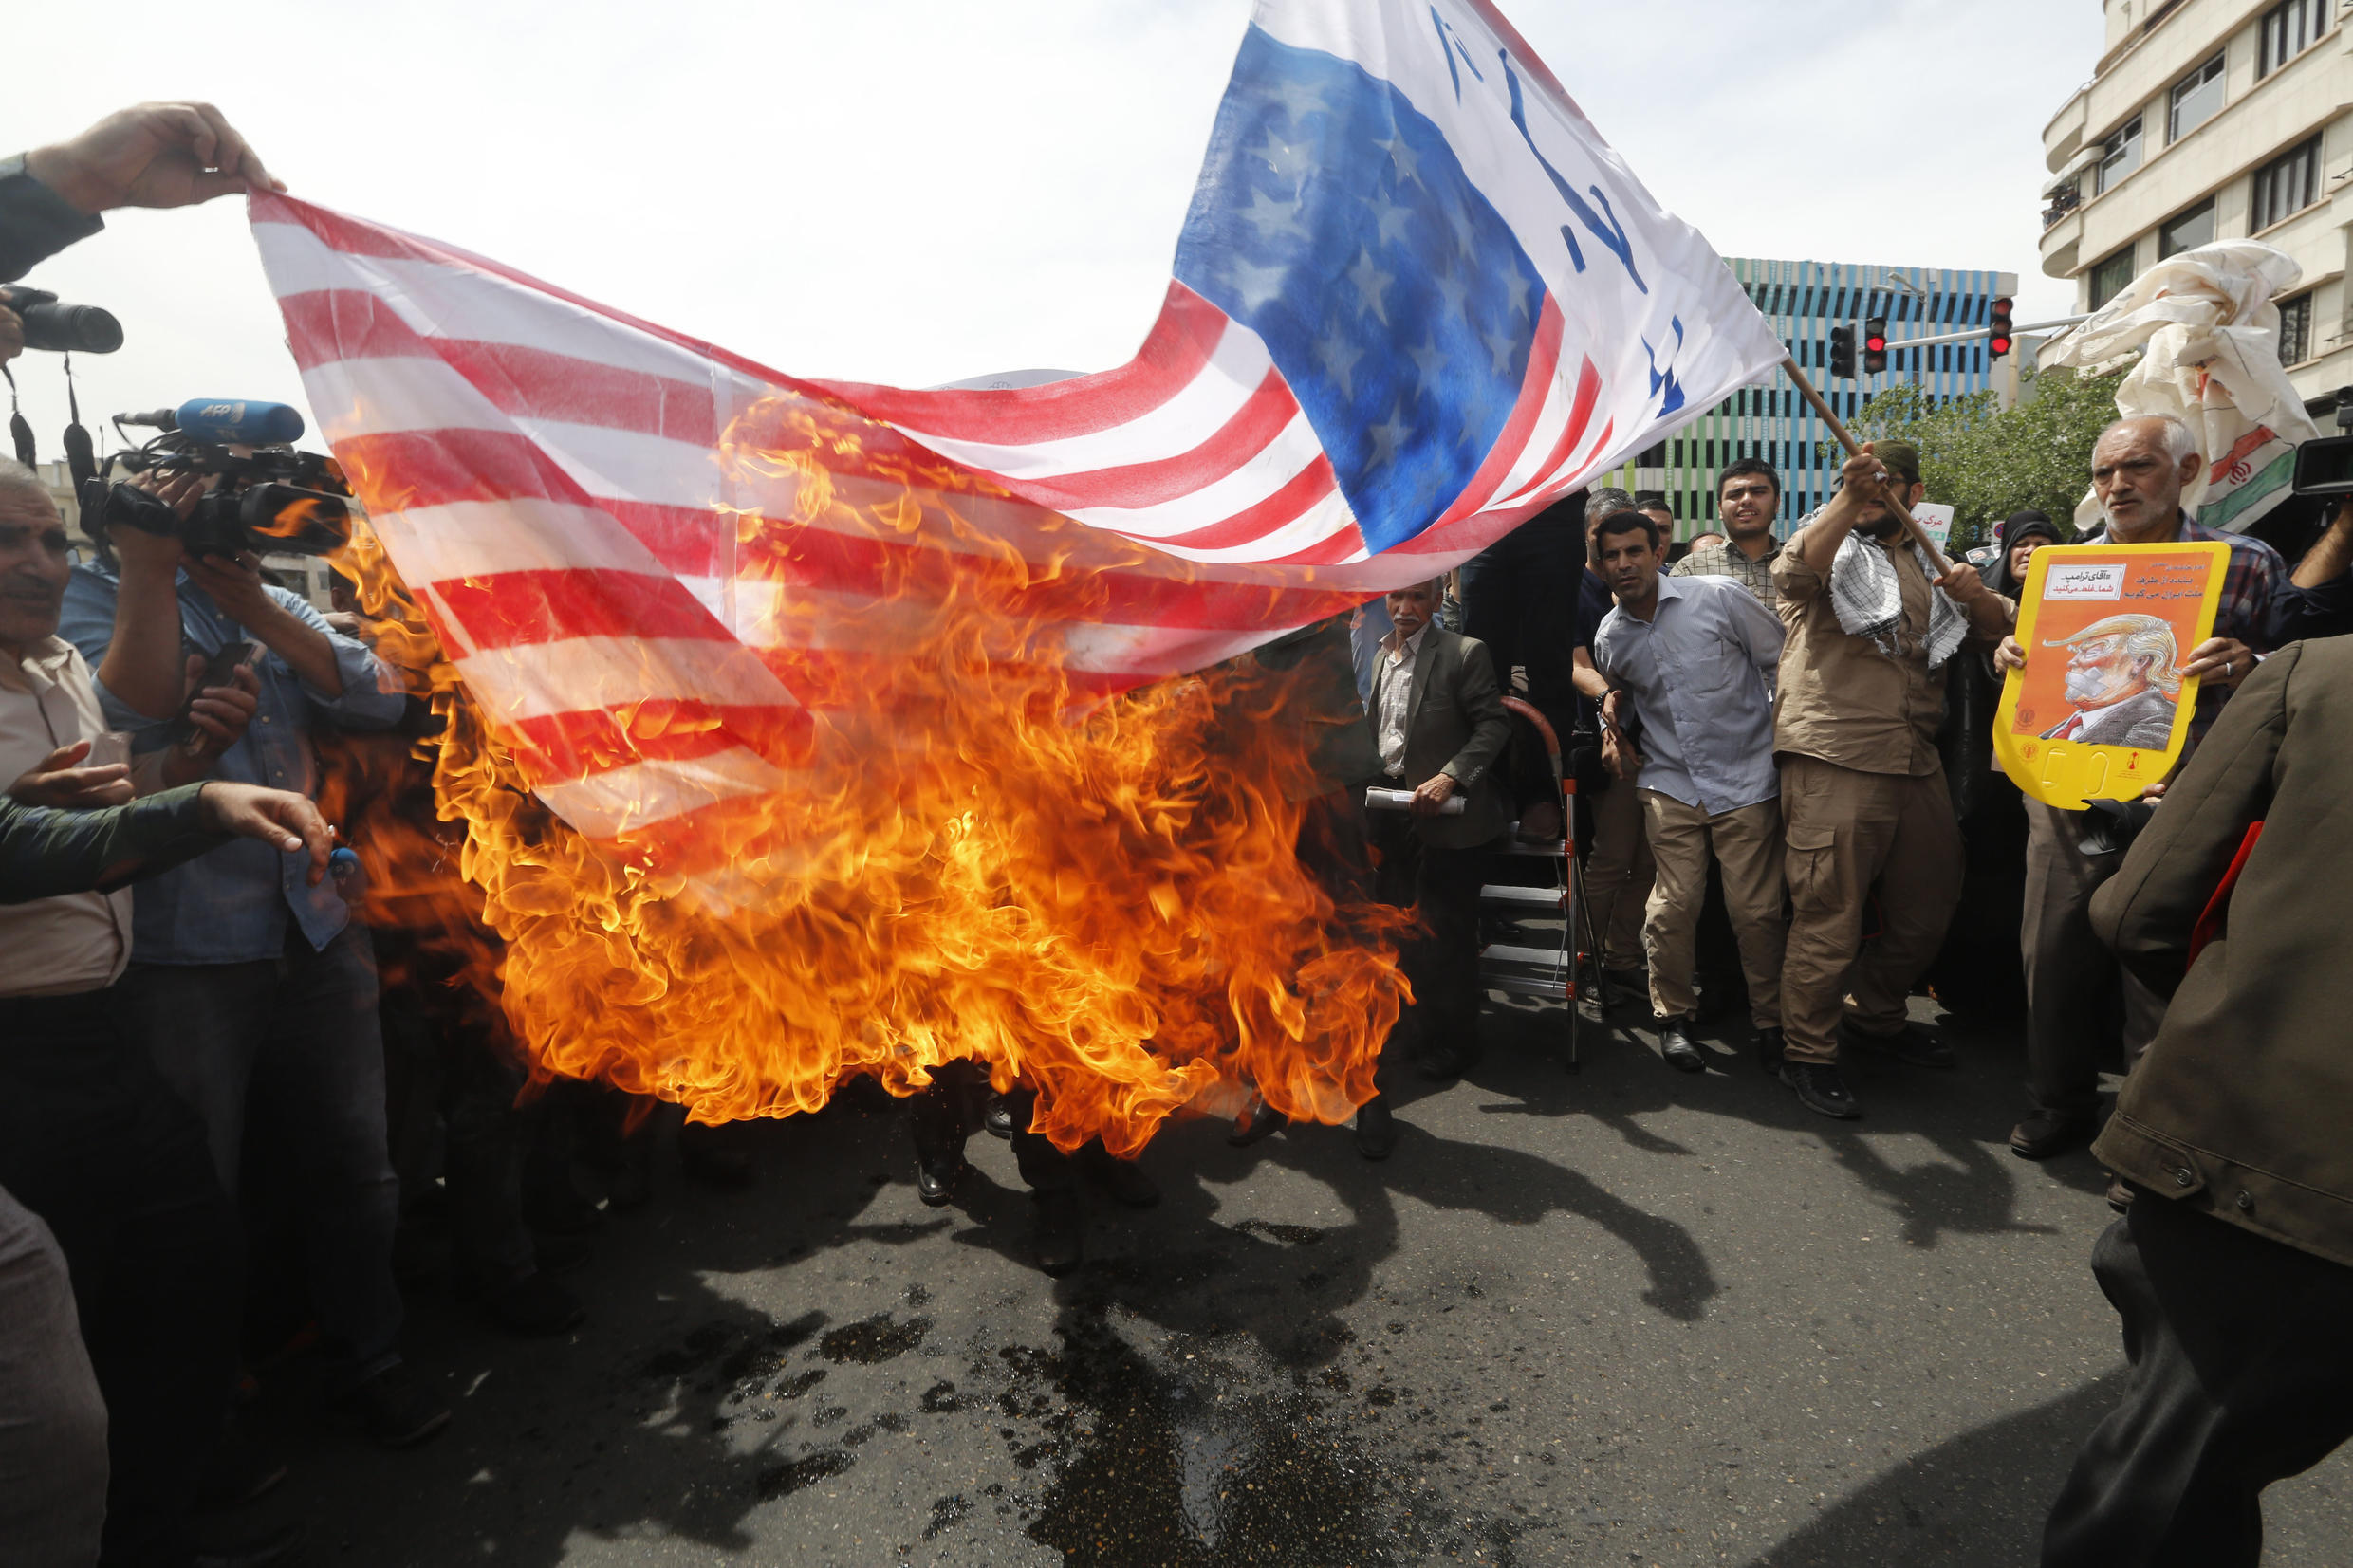 Iranians set an American flag on fire during a demonstration in Tehran on May 11, 2018.